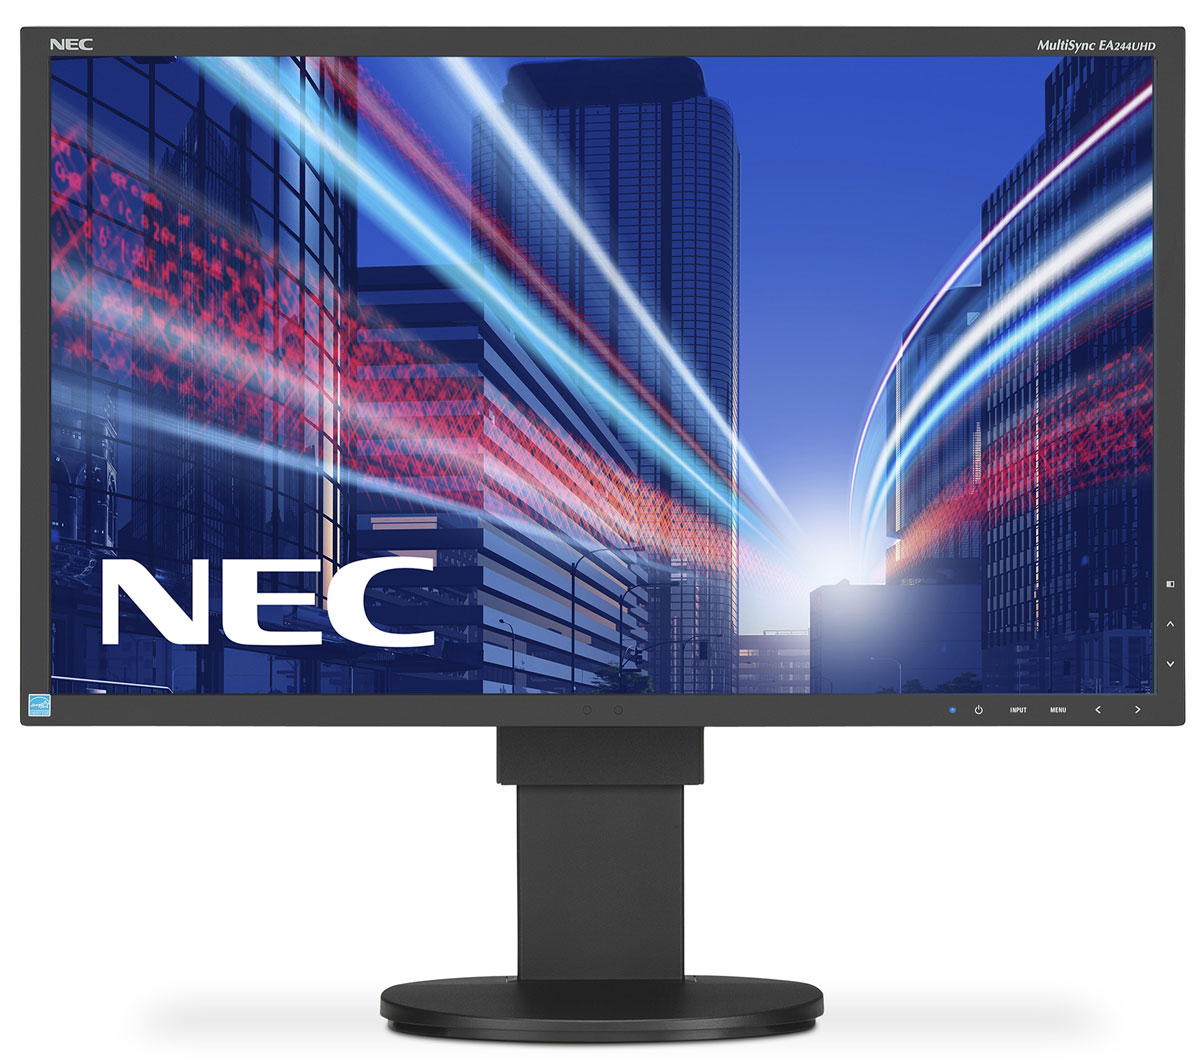 NEC EA275UHD-BK, Black монитор аксессуар чехол bq bqs 5065 choice cojess ultra slim book экокожа флотер light blue